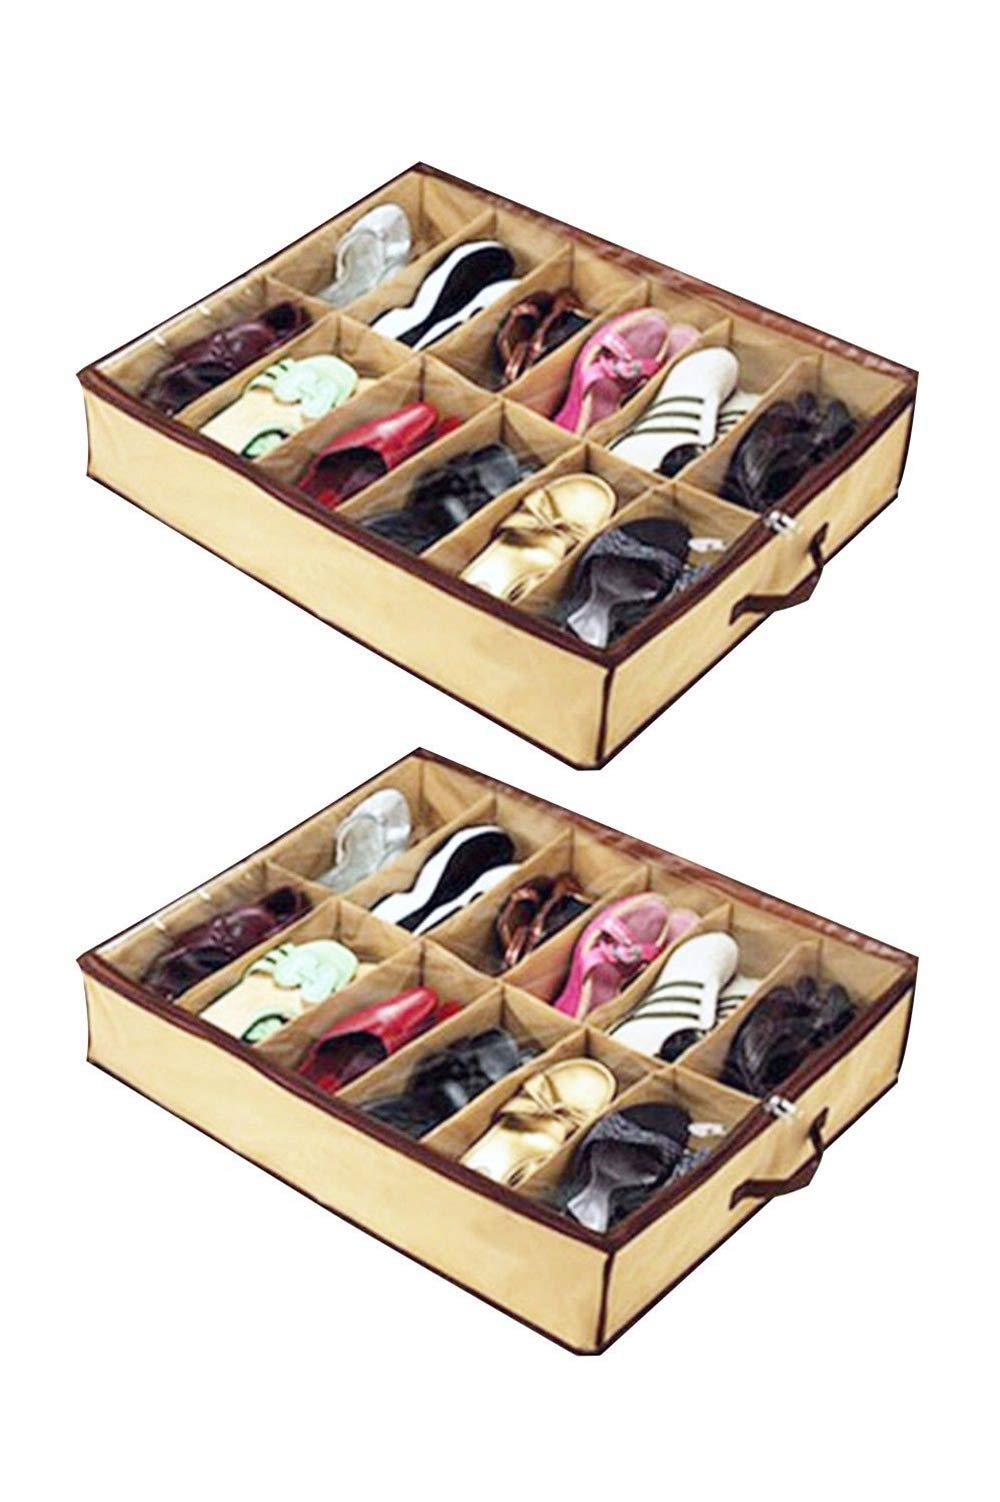 eyesonme Home Storage Shoe Organizers 12 Cells Under Bed Bag Foldable Closet Drawer, 2 pcs by eyesonme (Image #1)